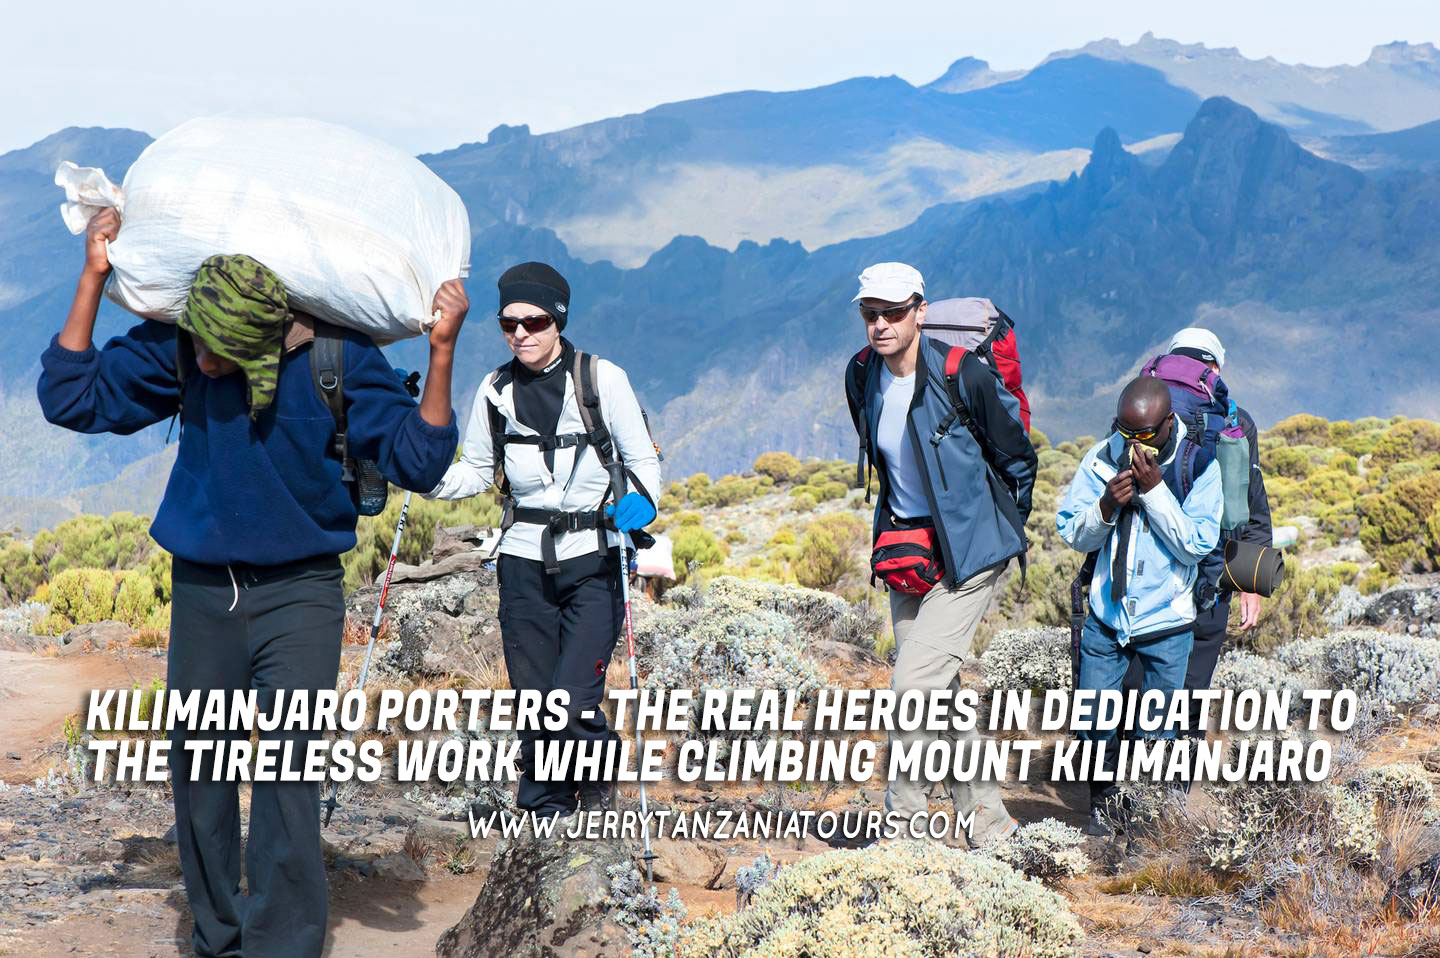 Kilimanjaro Porters – The Real Heroes In Dedication To The Tireless Work While Climbing Mount Kilimanjaro